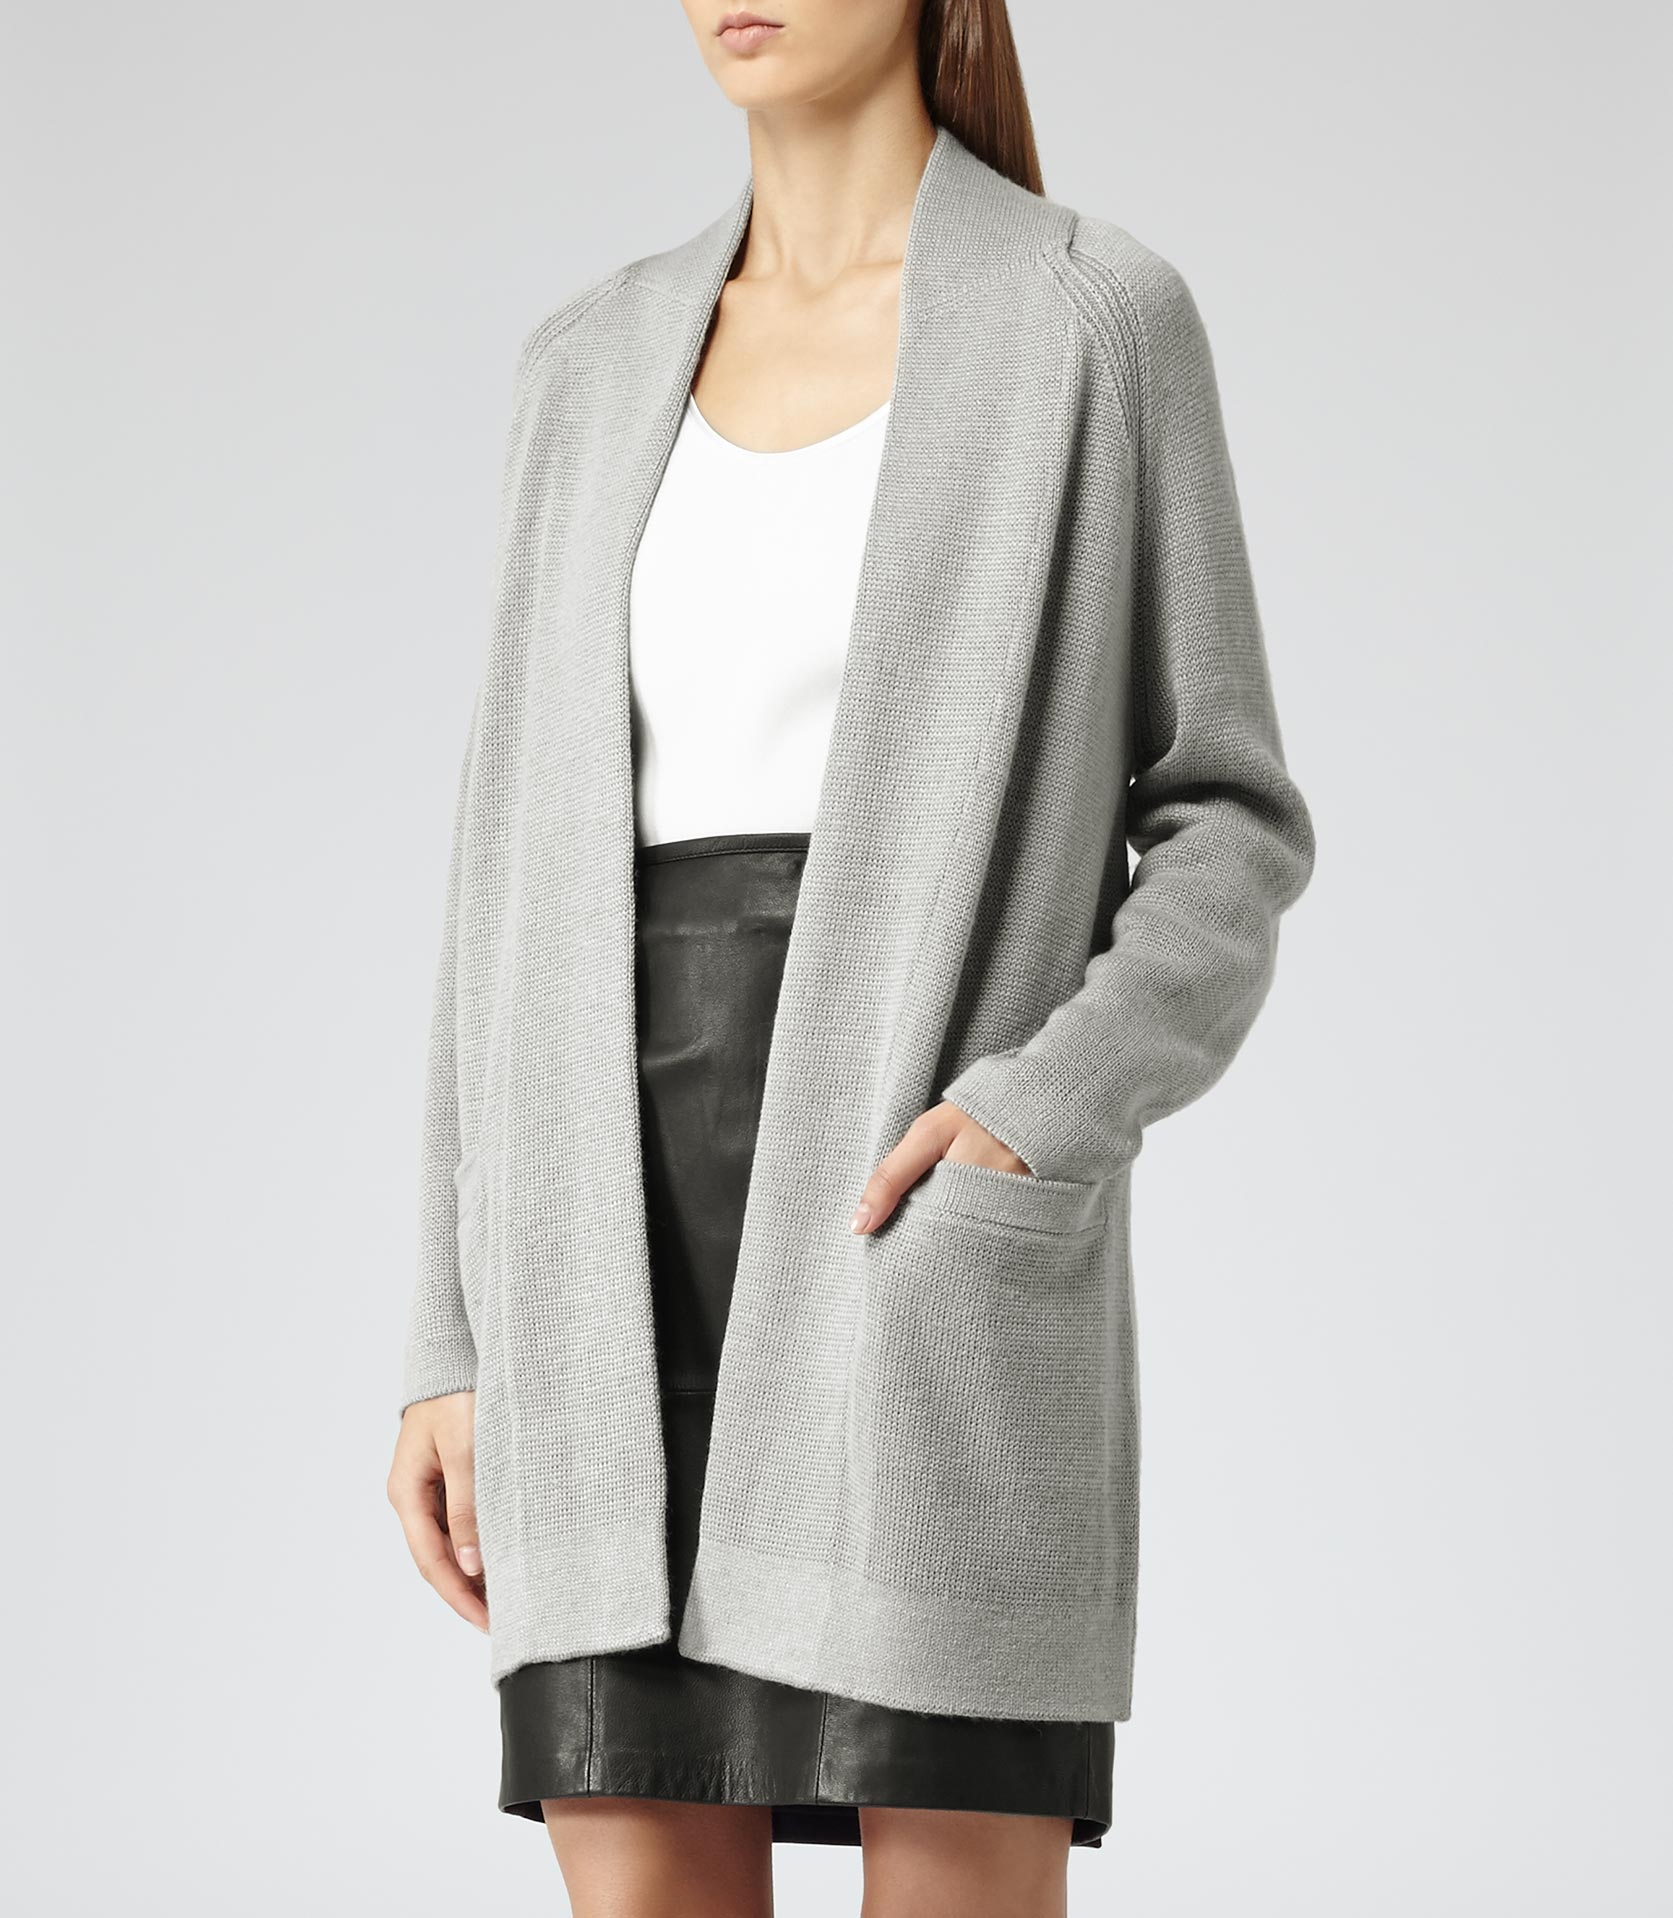 Reiss Kirsten Winter Knitted Cardigan in Gray | Lyst